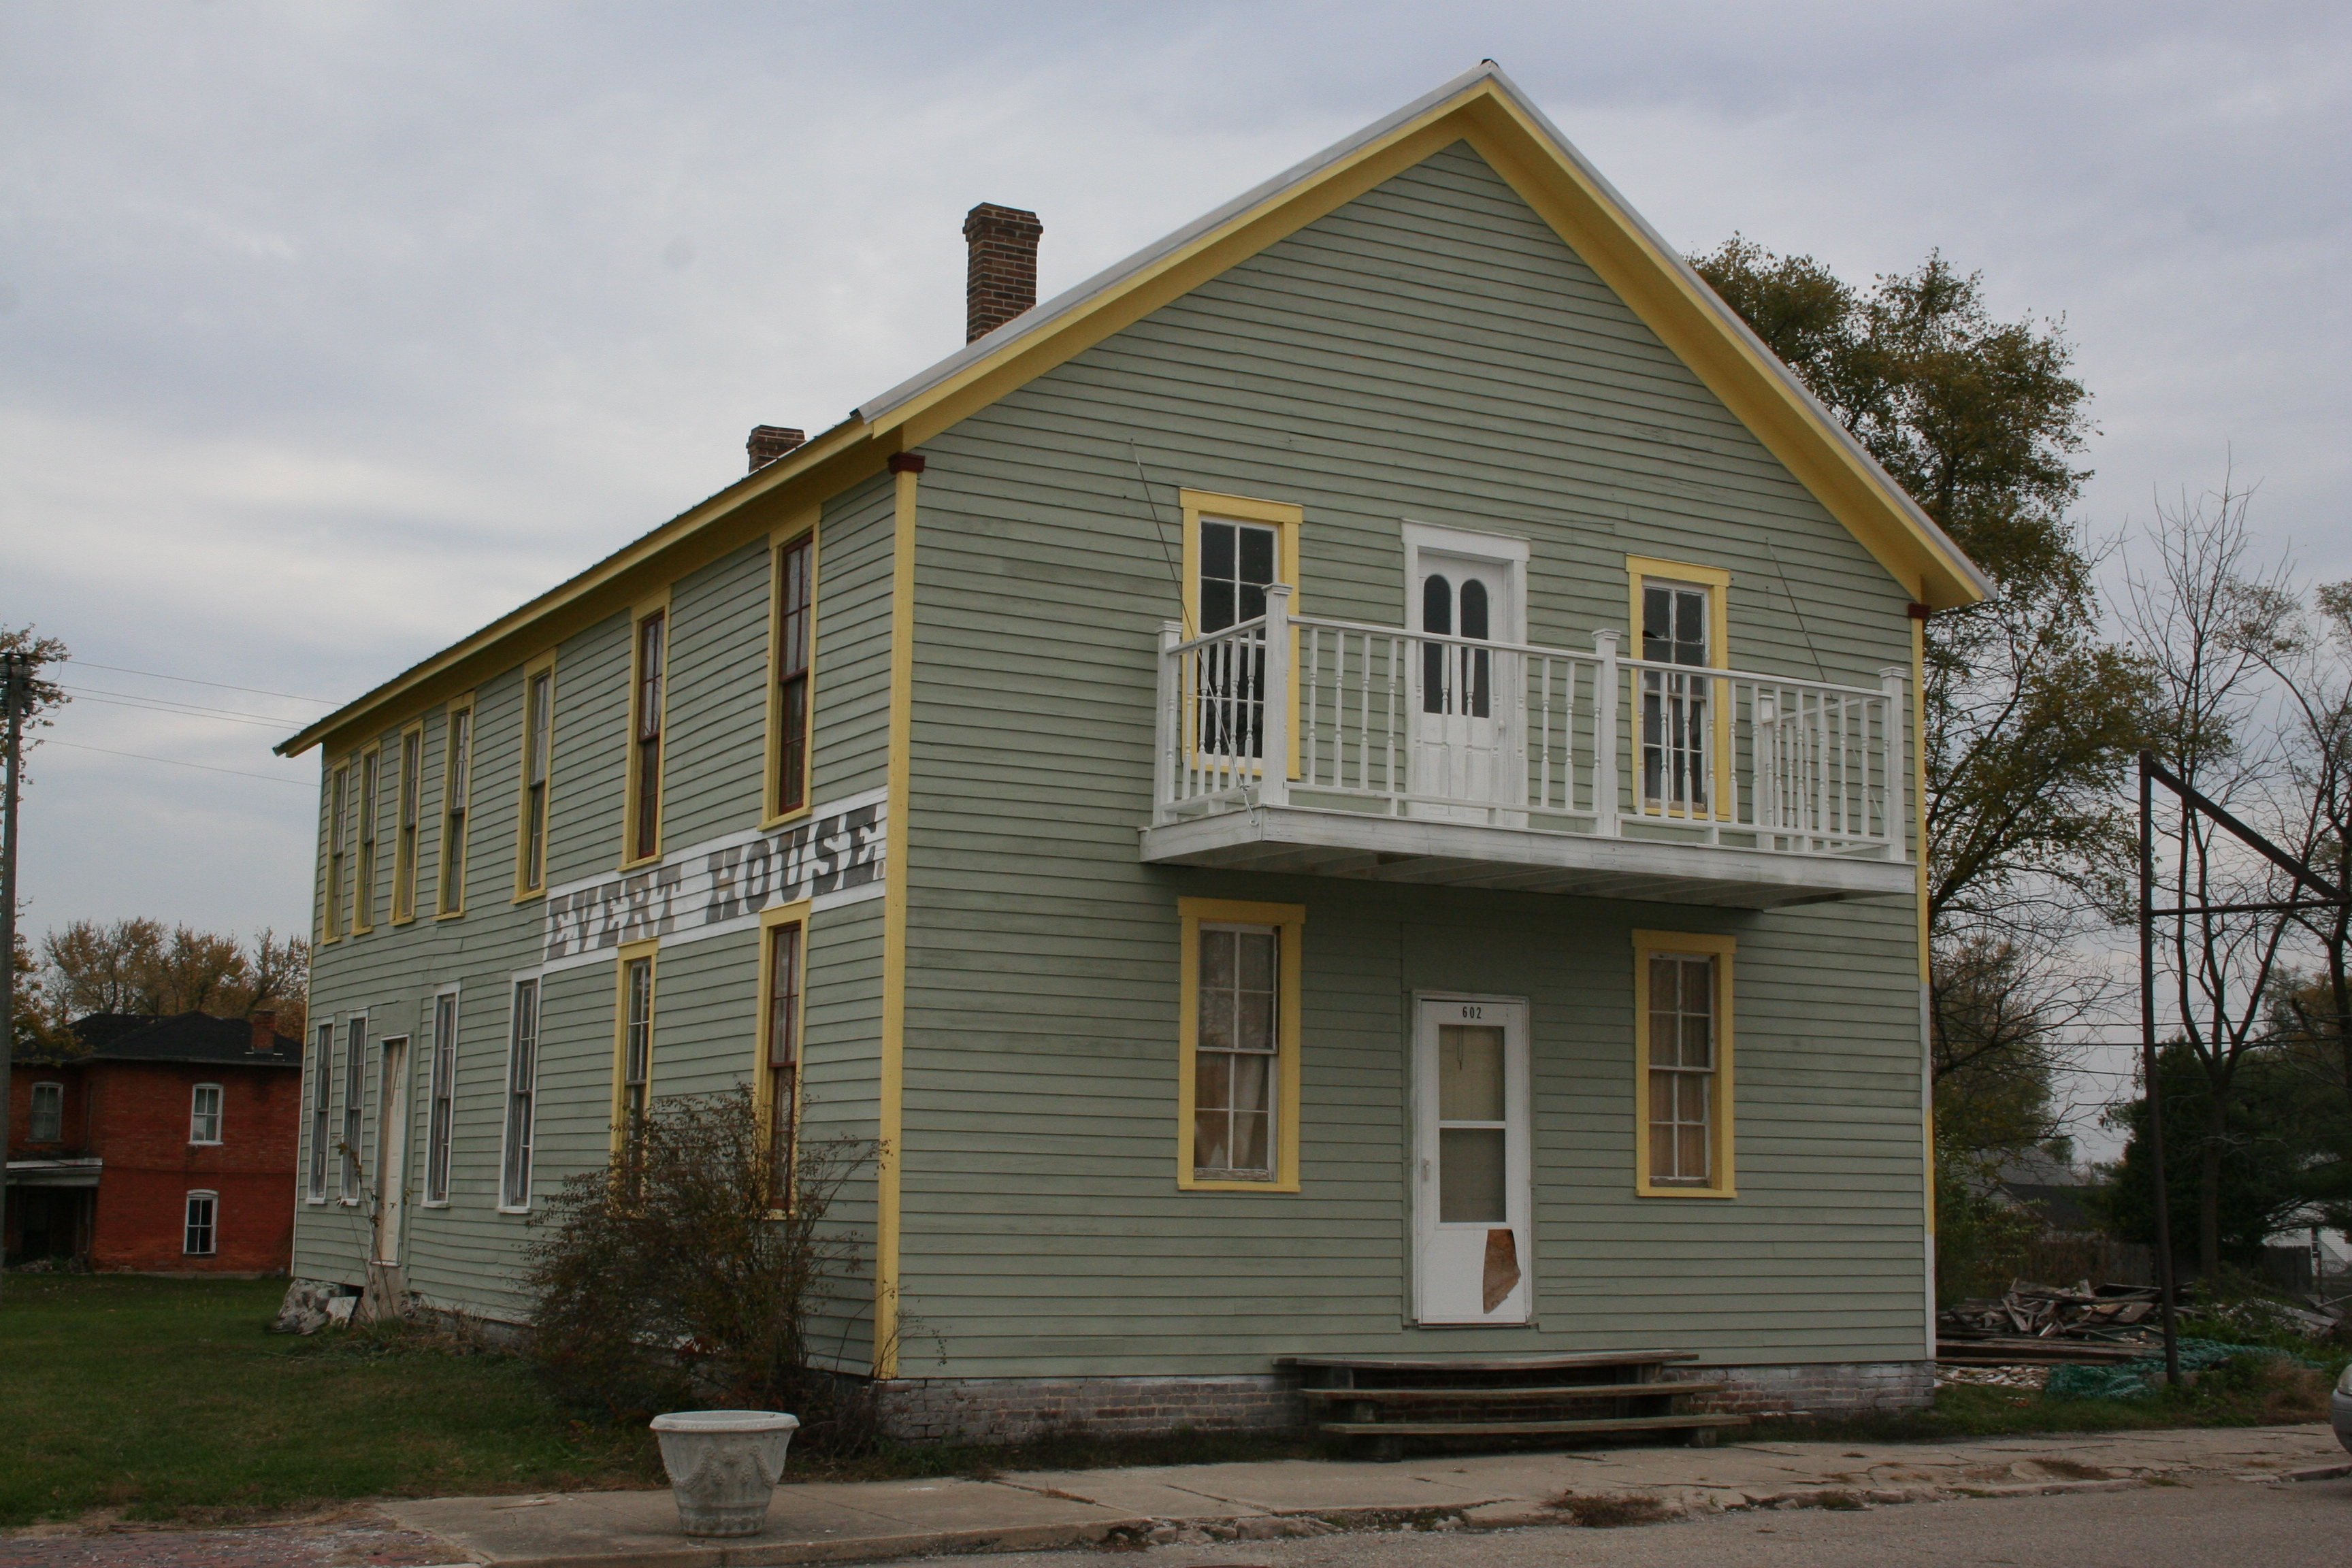 Evert House as it looks today.